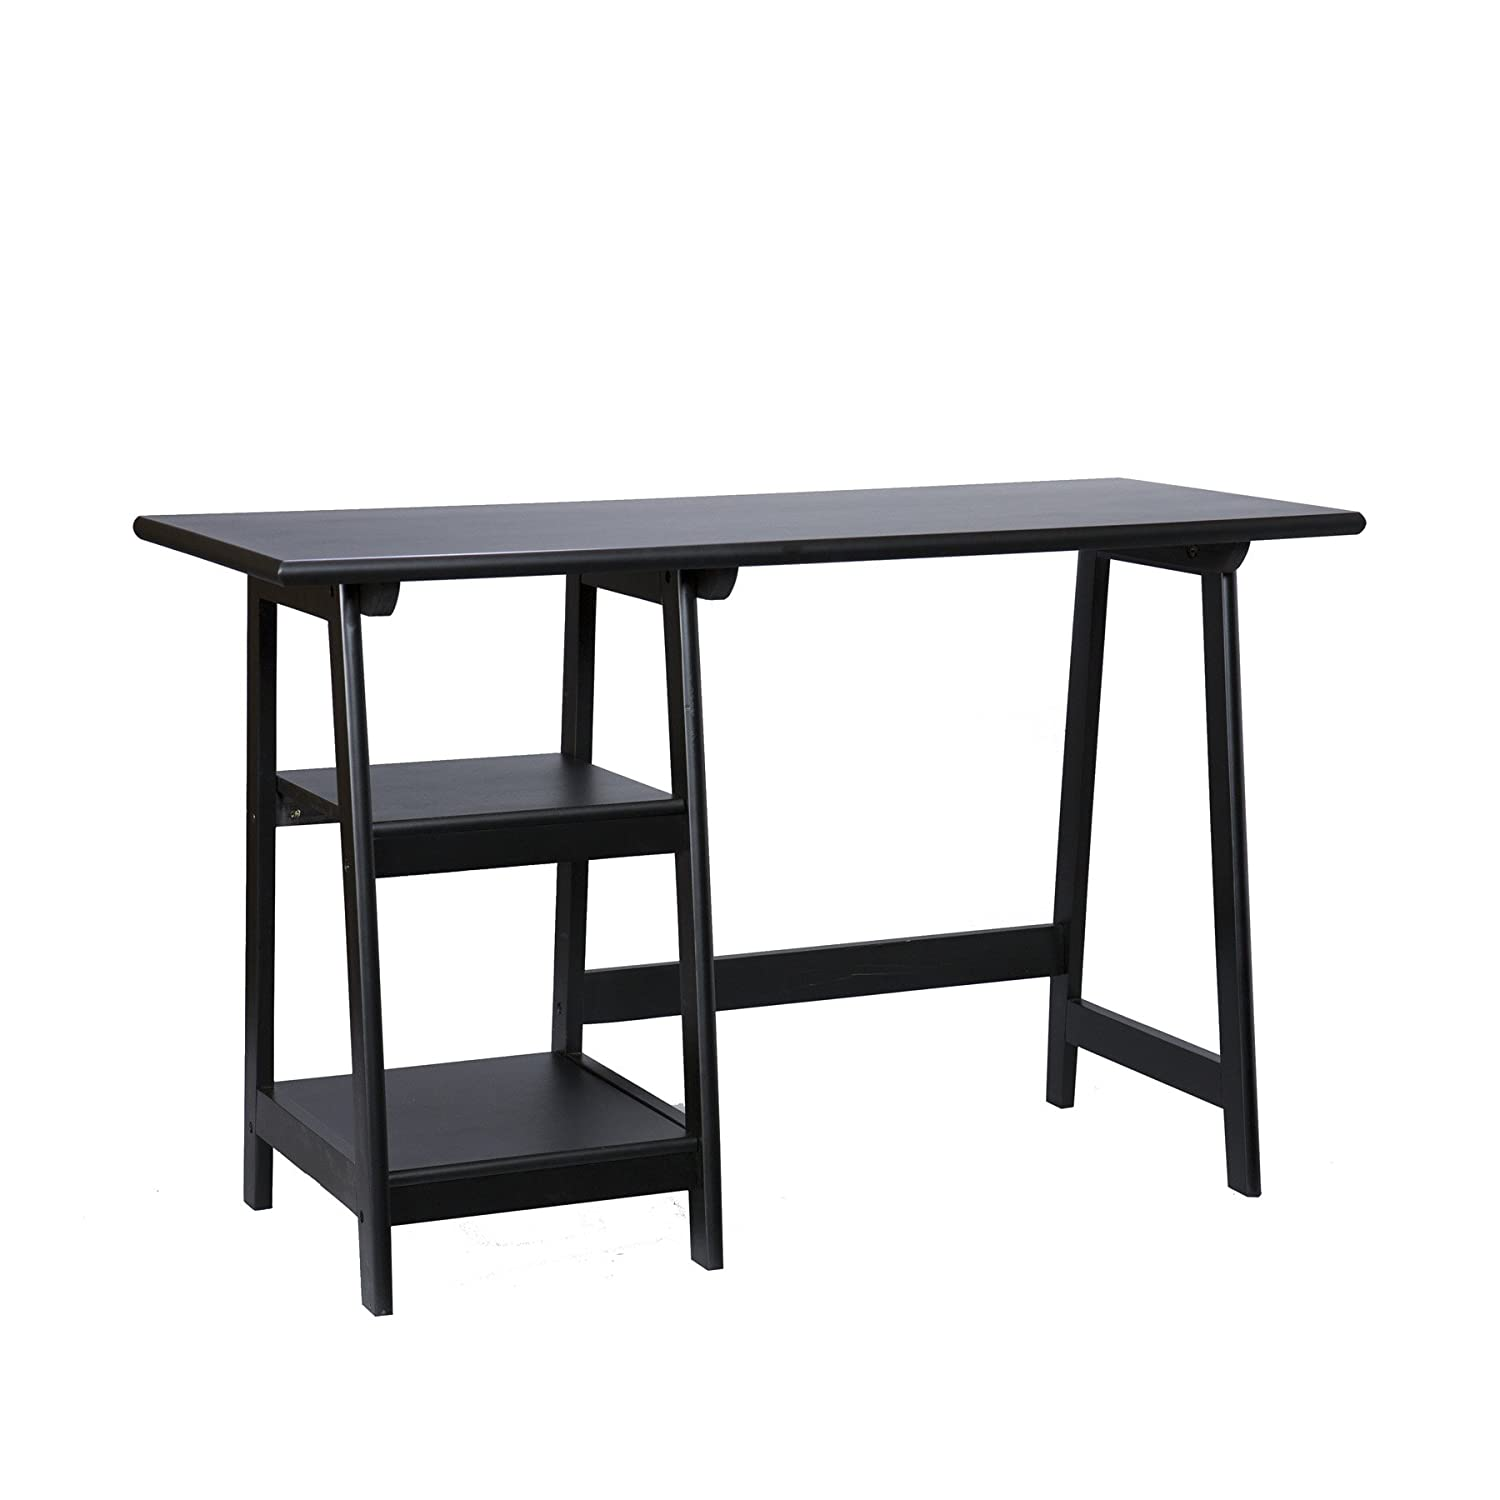 computer folding table shipping product modern stand bedroom notebook adjustable free desk tray laptop